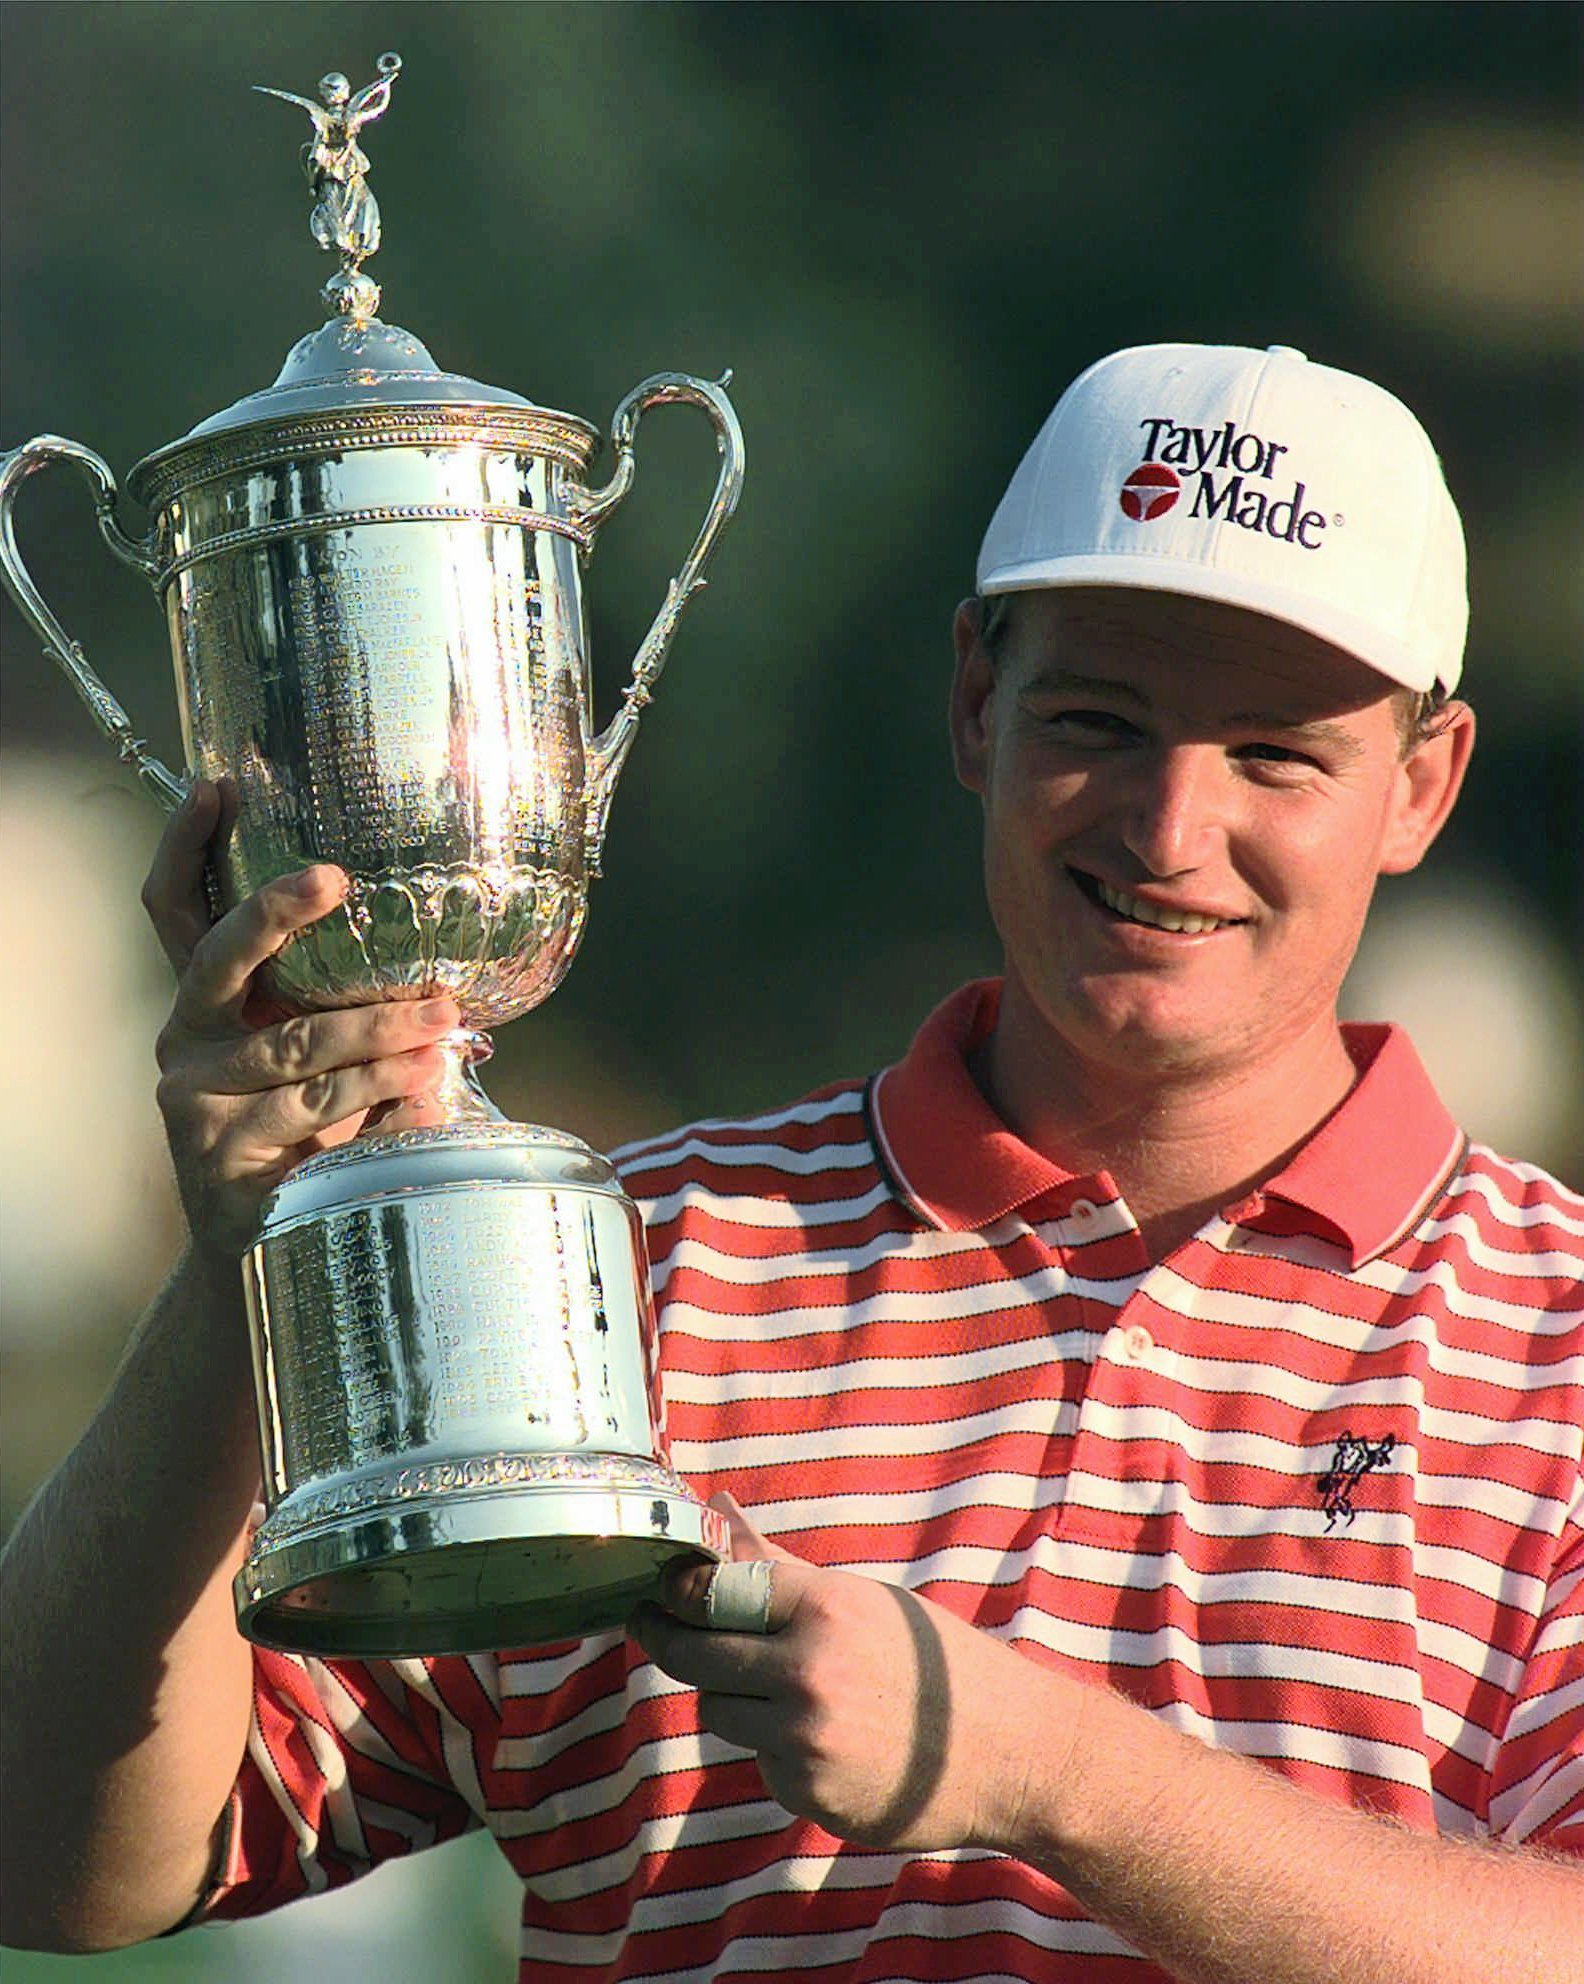 FILE - In this June 15, 1997, file photo, Ernie Els holds up the trophy after winning the U.S. Open golf tournament at Congressional Country Club in Bethesda, Md. In the first major since 21-year-old Tiger Woods won the Masters by 12 shots, Els was the fi